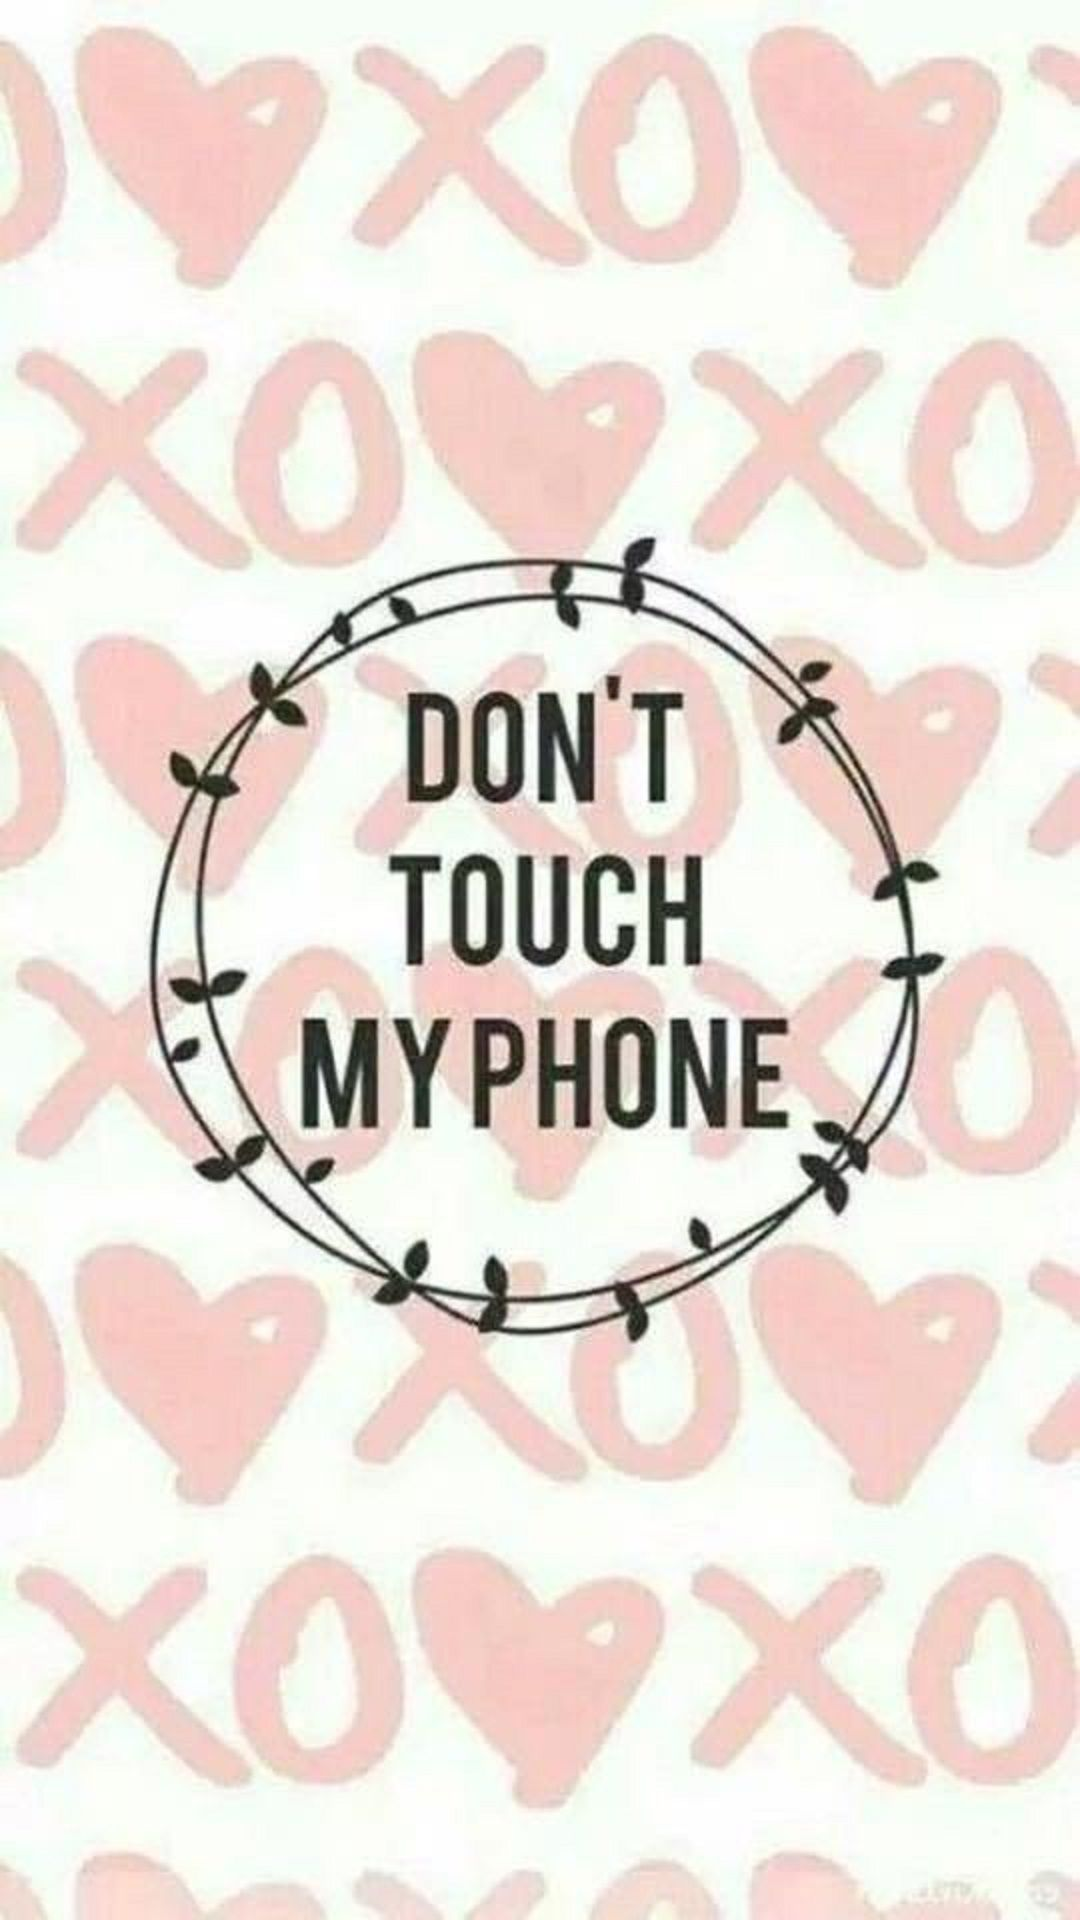 Dont Touch My Phone Tap To See More Donttouch My Phone Wallpapers Mobile9 Dont Touch My Phone Wallpapers Iphone Wallpaper Girly Funny Iphone Wallpaper